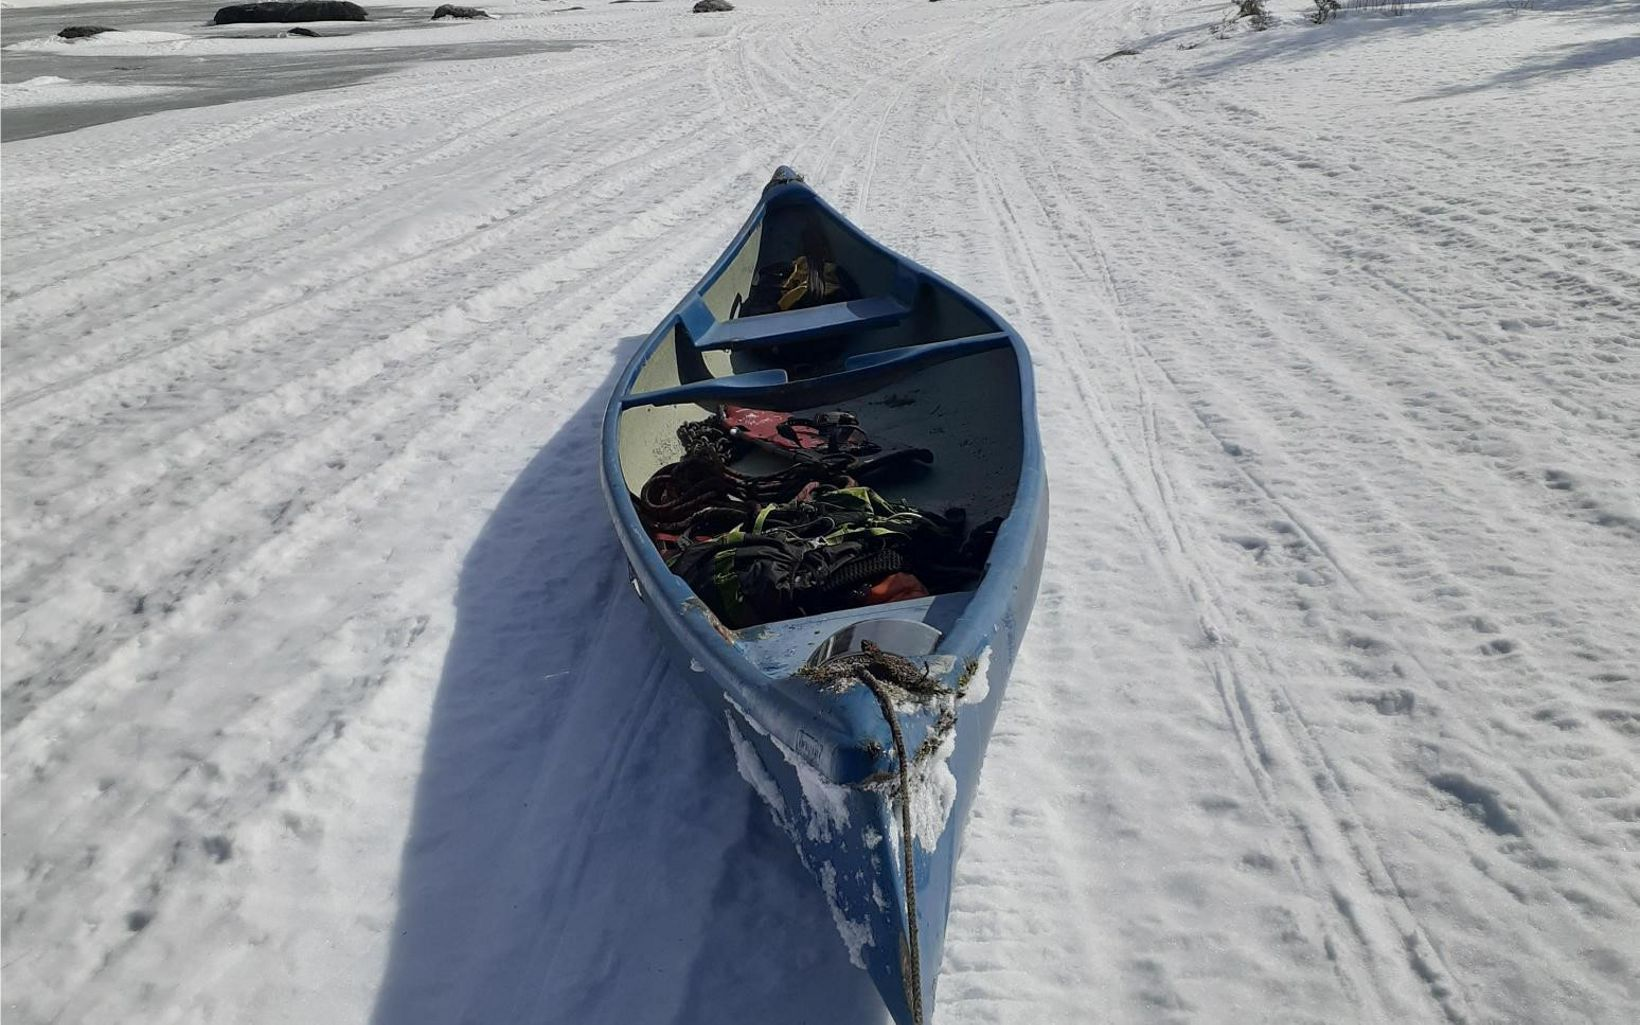 View from snowmobile of a canoe towing behind in the snow.